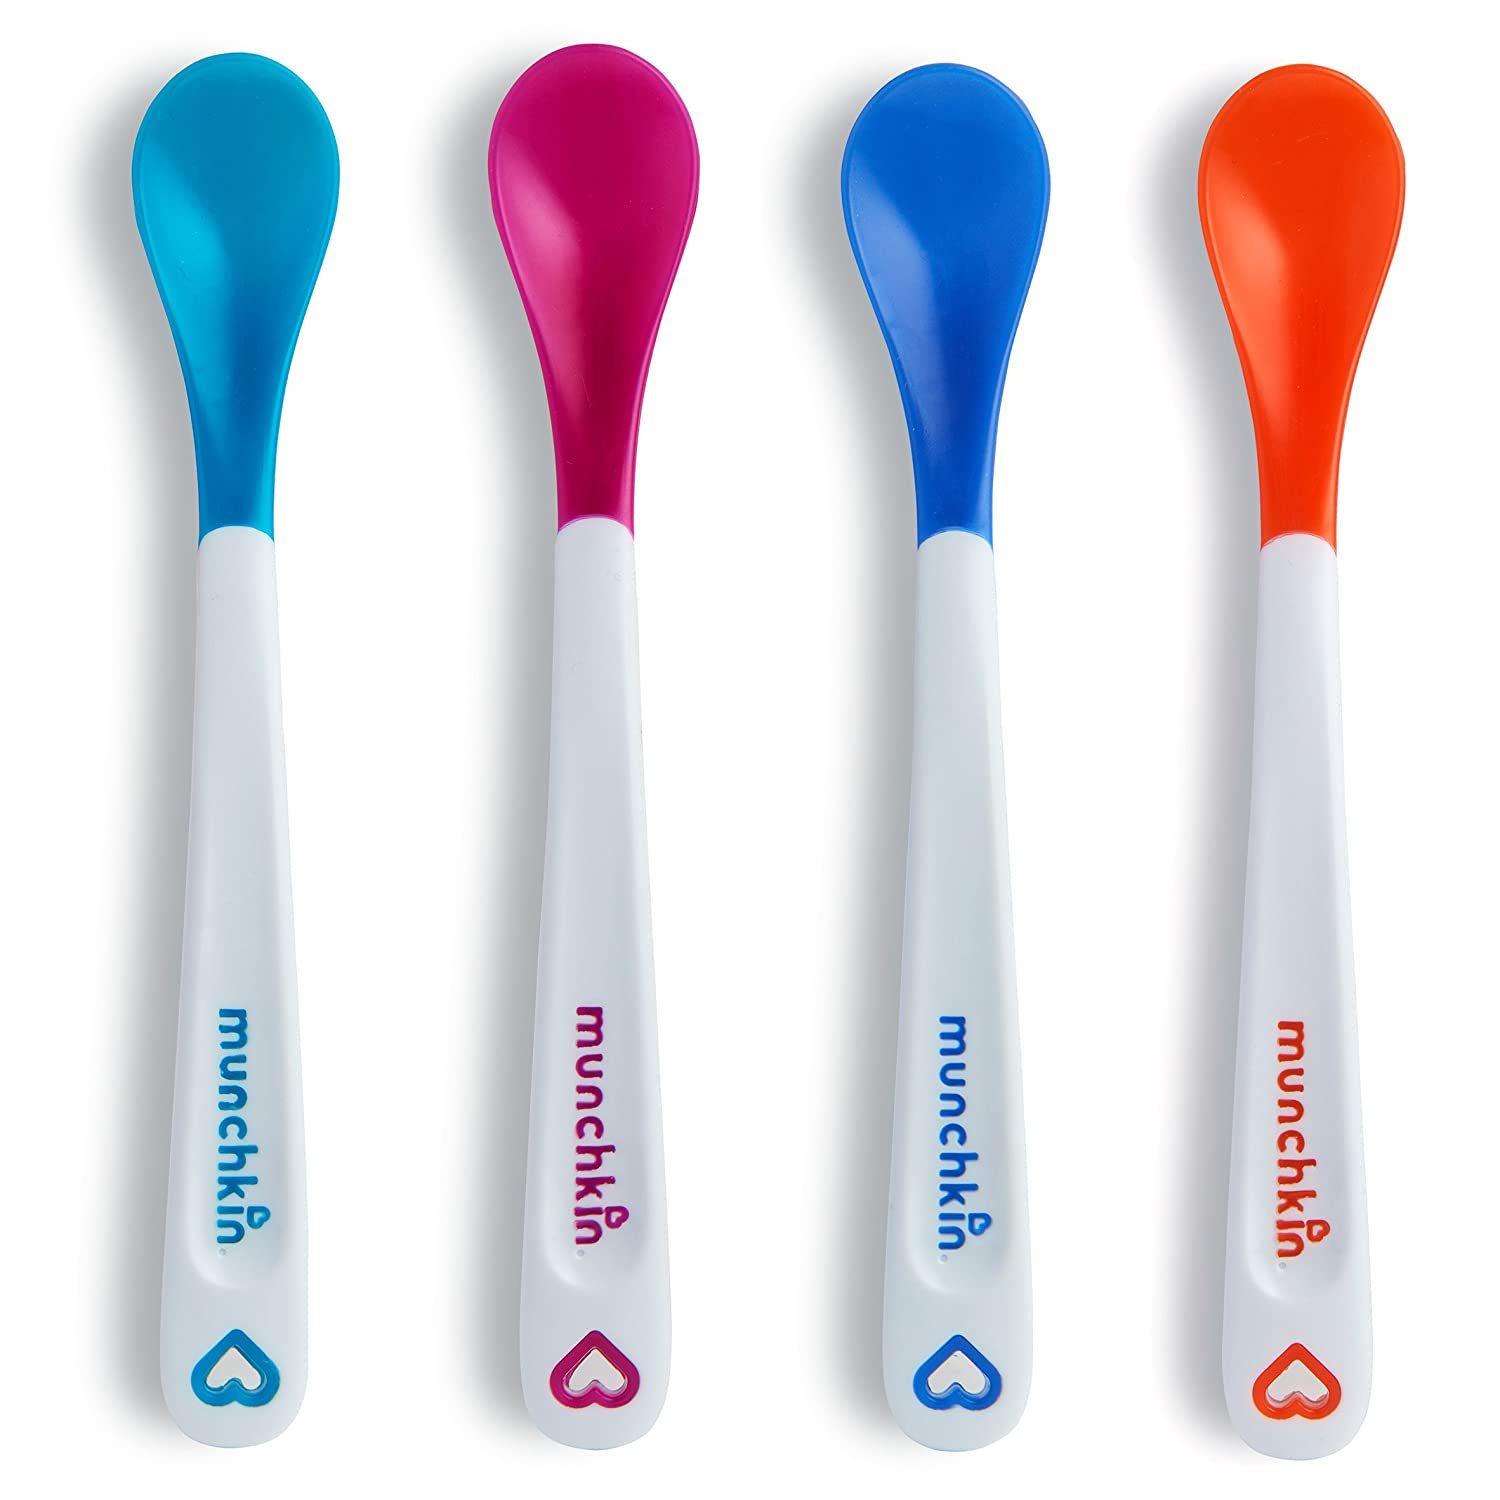 Top 9 Best Baby Spoons for Self Feeding Reviews in 2021 13